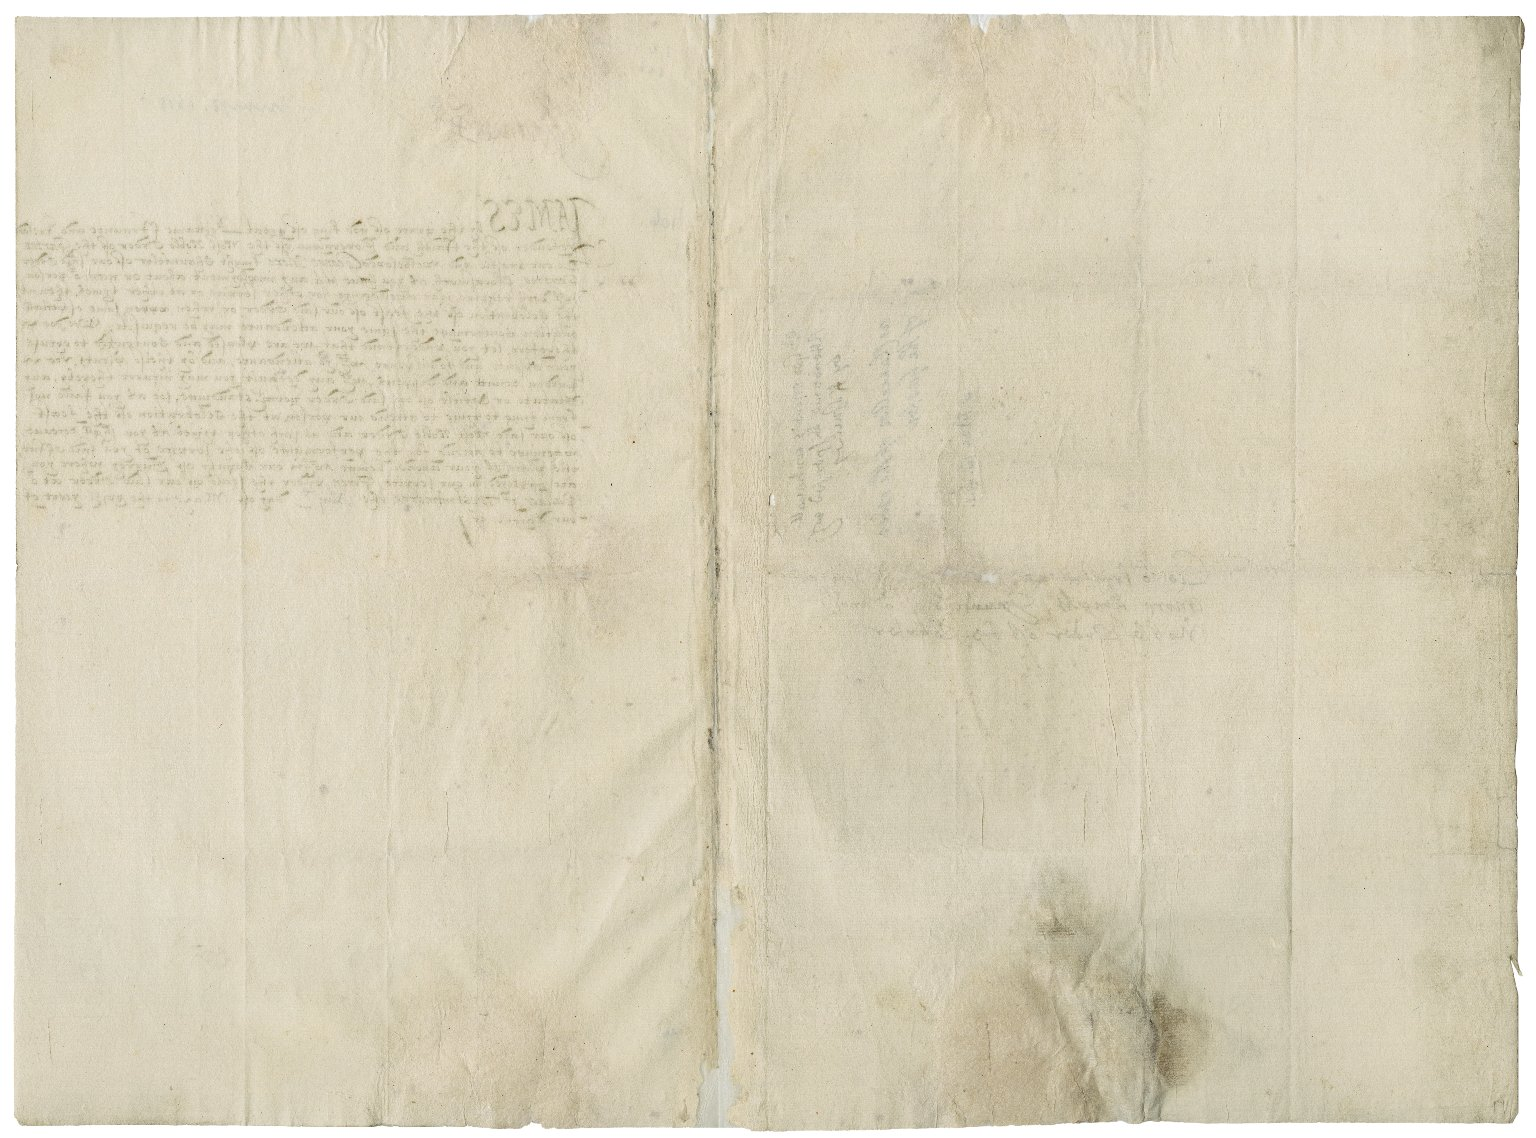 Great Britain. Sovereigns, etc., 1603-1625 (James I). Warrant to Sir George More, Chancellor of the Order of the Garter. Westminster.